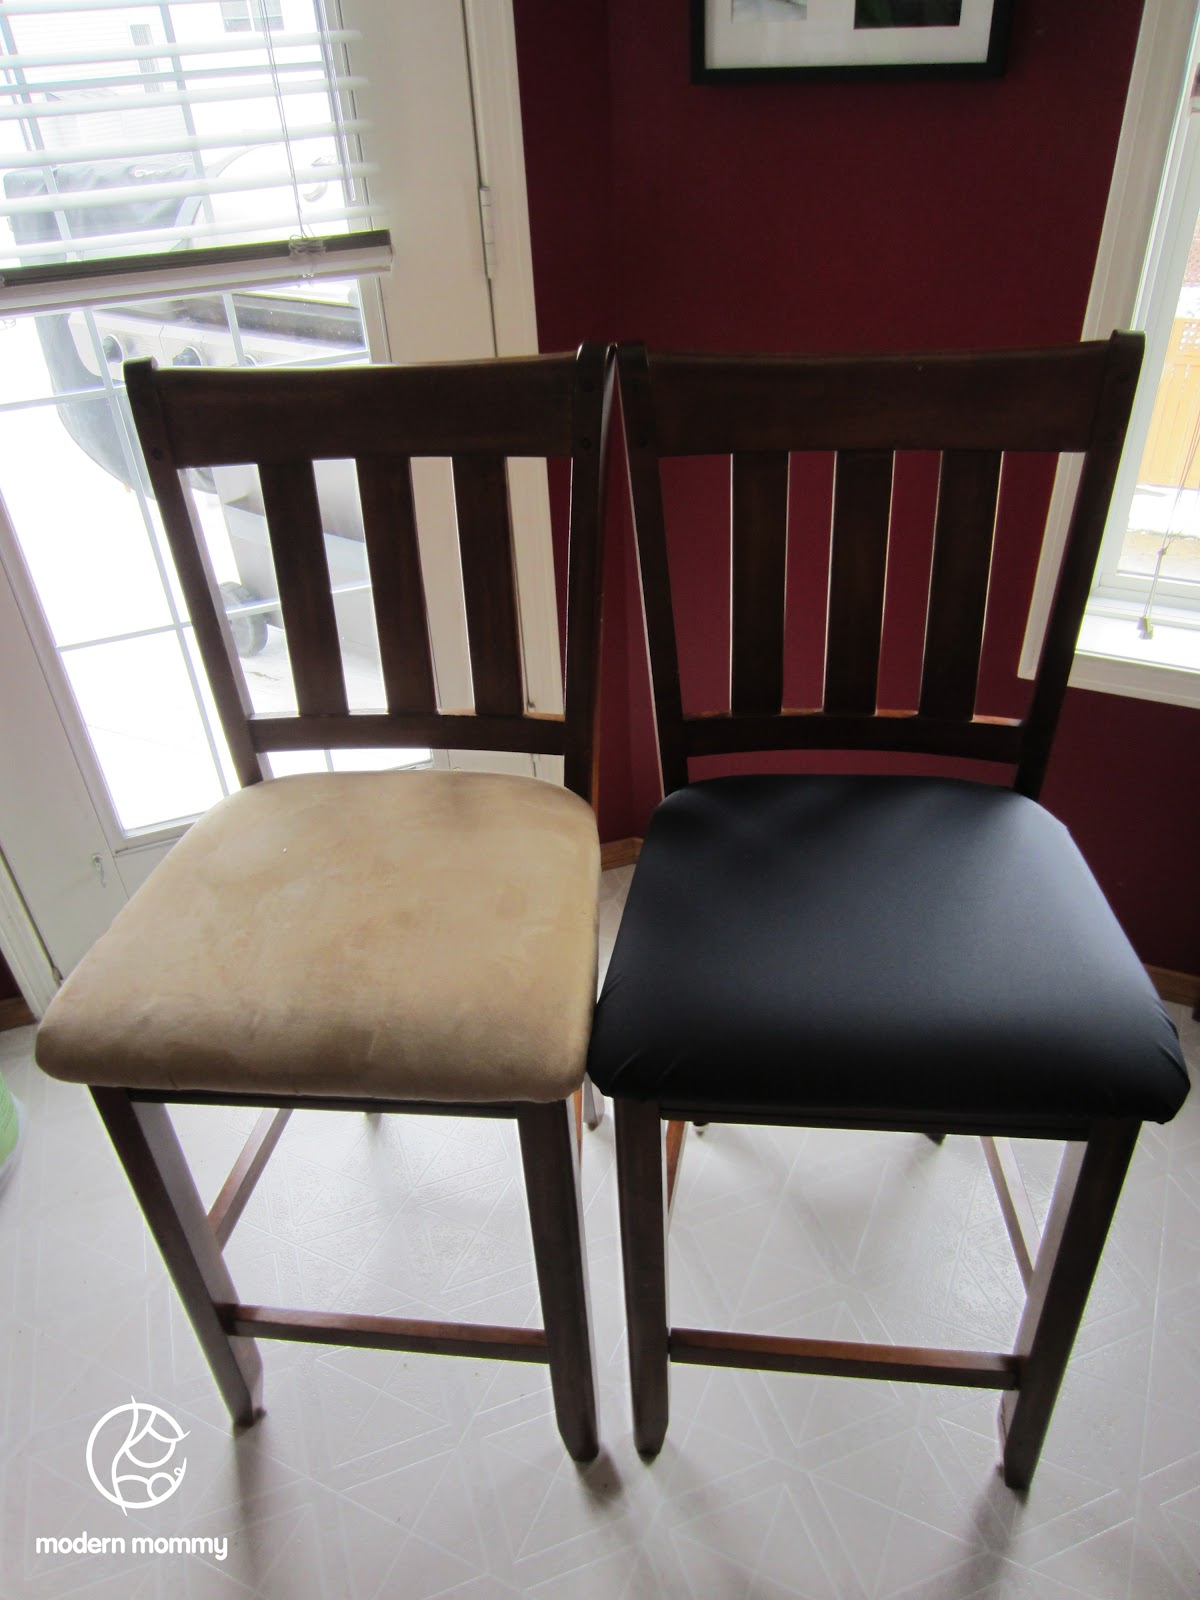 Merveilleux Home DIY: Reupholstered Dining Chairs